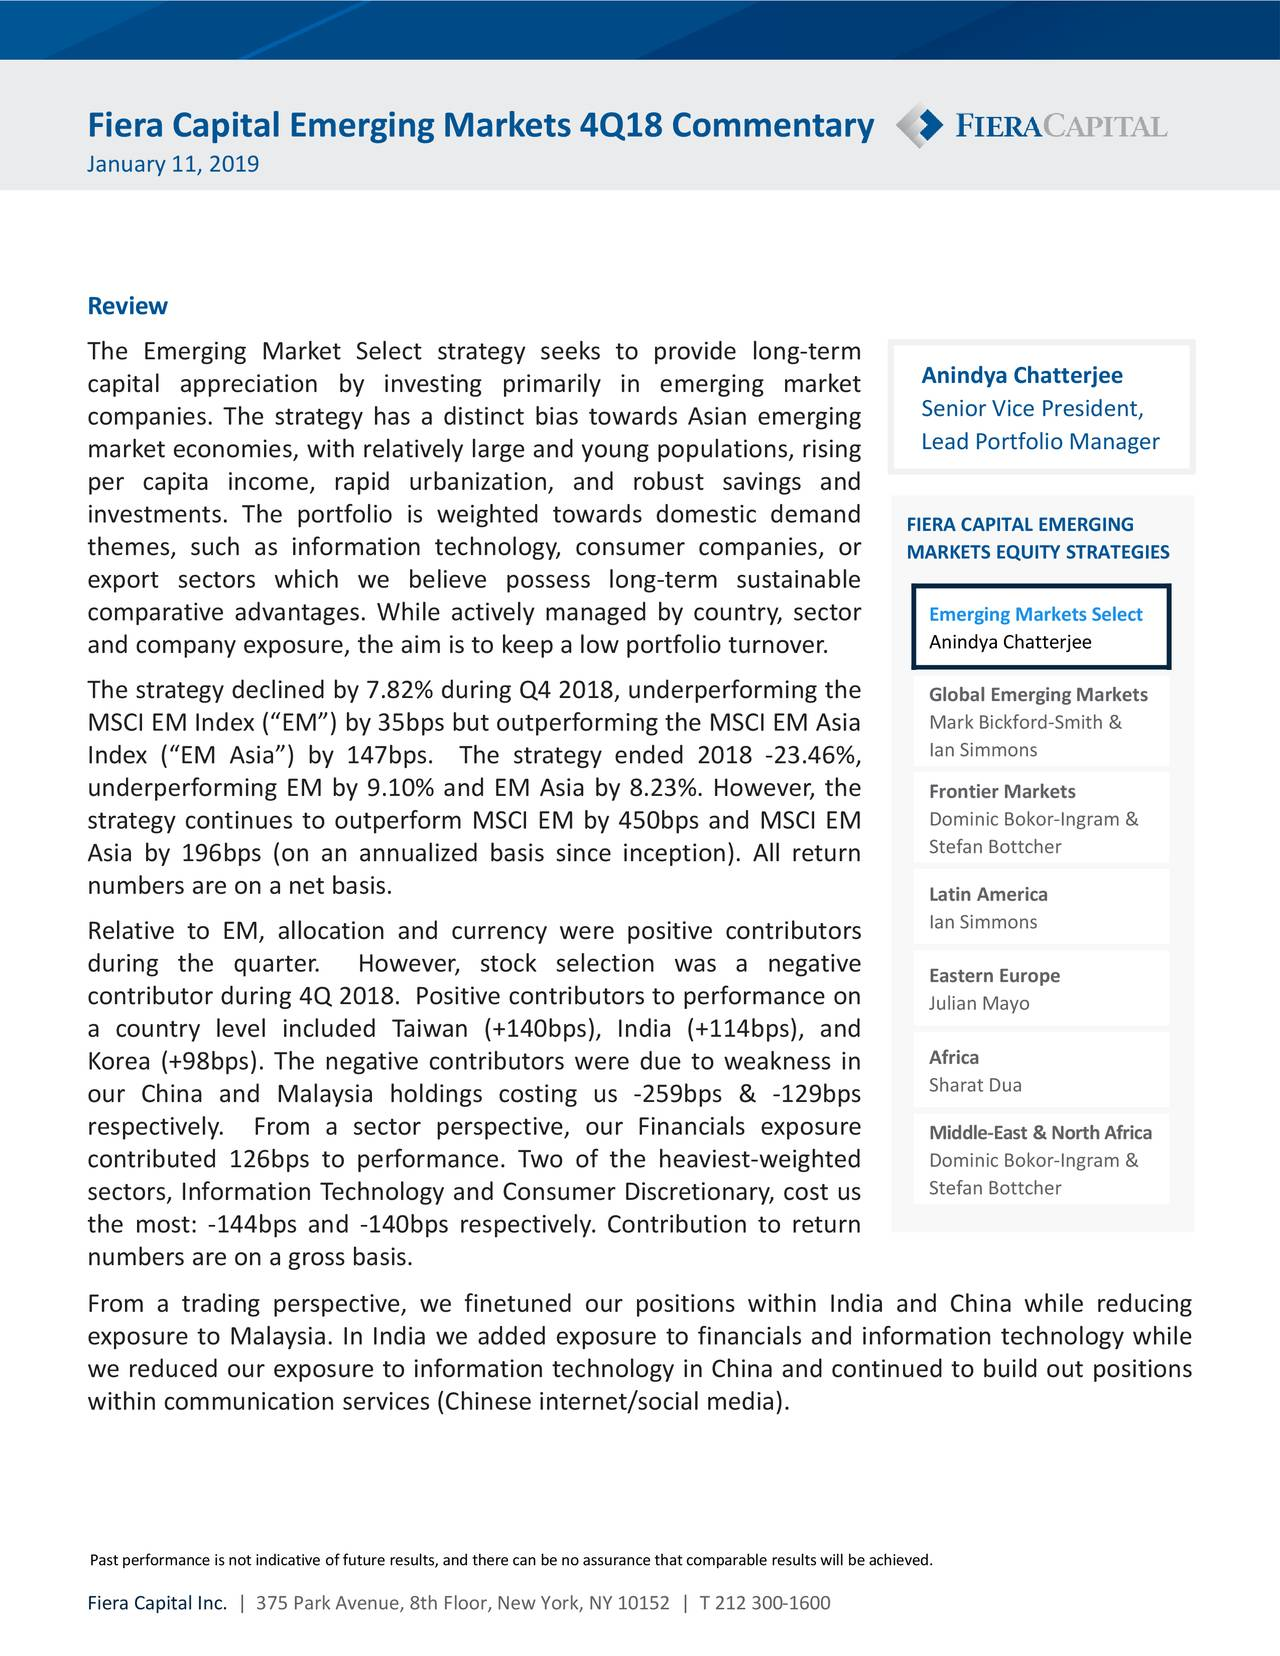 """January 11, 2019 Review The Emerging Market Select strategy seeks to provide long-term Anindya Chatterjee capital appreciation by investing primarily in emerging market companies. The strategy has a distinct bias towards Asian emerging Senior Vice President, Lead Portfolio Manager market economies, with relatively large and young populations, rising per capita income, rapid urbanization, and robust savings and investments. The portfolio is weighted towards domestic demand FIERA CAPITAL EMERGING themes, such as information technology, consumer companies, or MARKETS EQUITY STRATEGIES export sectors which we believe possess long-term sustainable comparative advantages. While actively managed by country, sector Emerging Markets Select and company exposure, the aim is to keep a low portfolio turnover. Anindya Chatterjee The strategy declined by 7.82% during Q4 2018, underperforming the Global Emerging Markets MSCI EM Index (""""EM"""") by 35bps but outperforming the MSCI EM Asia Mark Bickford-Smith & Ian Simmons Index (""""EM Asia"""") by 147bps. The strategy ended 2018 -23.46%, underperforming EM by 9.10% and EM Asia by 8.23%. However, the Frontier Markets Dominic Bokor-Ingram & strategy continues to outperform MSCI EM by 450bps and MSCI EM Asia by 196bps (on an annualized basis since inception). All return Stefan Bottcher numbers are on a net basis. Latin America Relative to EM, allocation and currency were positive contributors Ian Simmons during the quarter. However, stock selection was a negative Eastern Europe contributor during 4Q 2018. Positive contributors to performance on Julian Mayo a country level included Taiwan (+140bps), India (+114bps), and Korea (+98bps). The negative contributors were due to weakness in Africa our China and Malaysia holdings costing us -259bps & -129bps Sharat Dua respectively. From a sector perspective, our Financials exposure Middle-East & North Africa contributed 126bps to performance. Two of the heaviest-weighted Dominic Bokor-Ingram & sectors"""